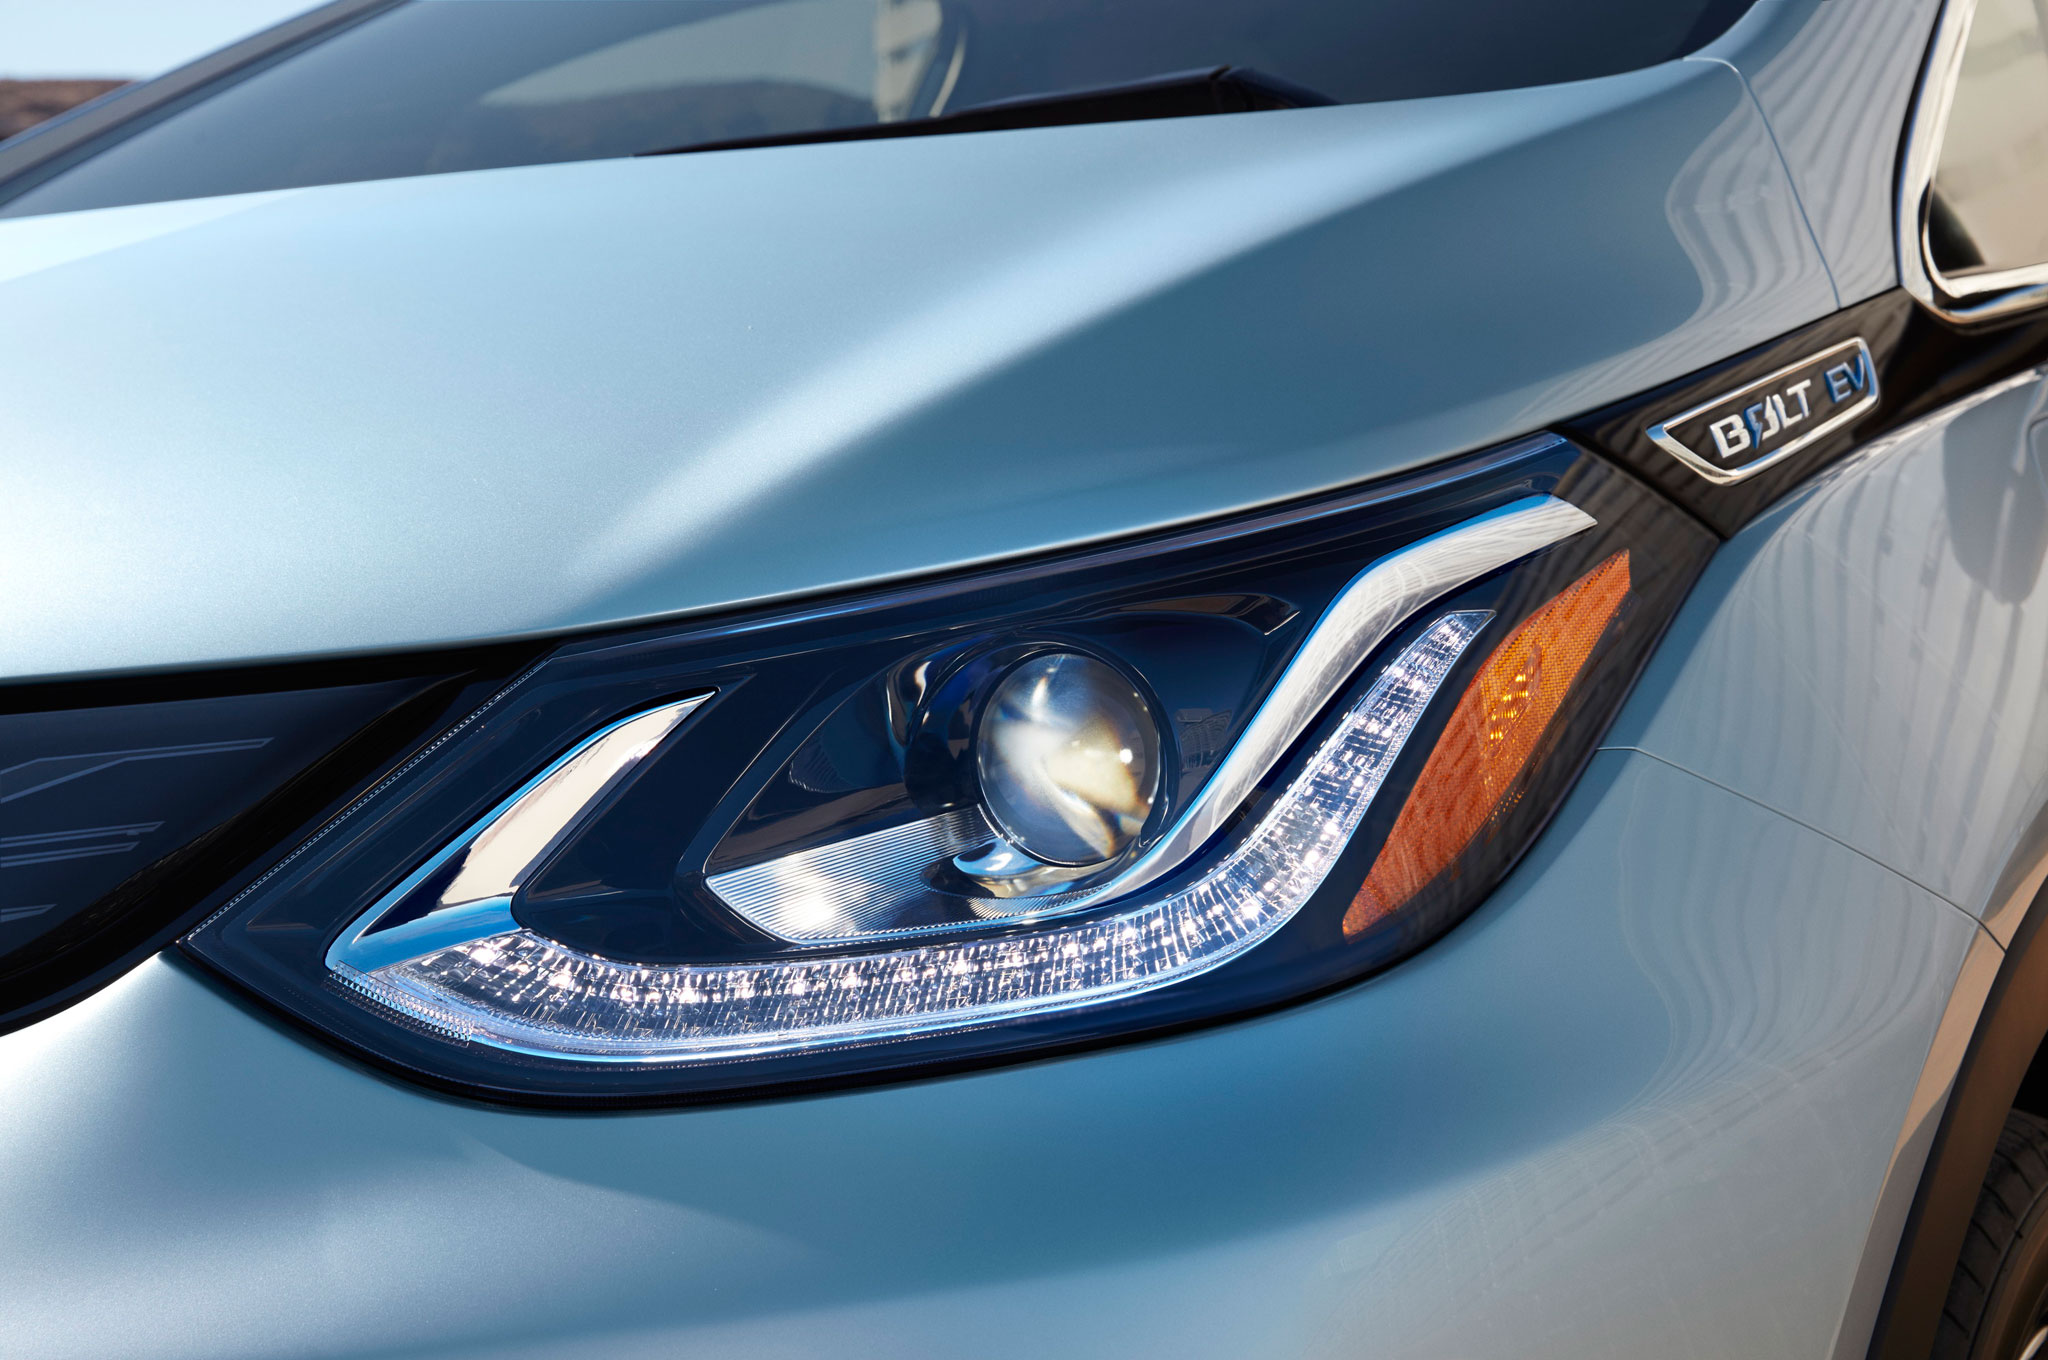 2017 Chevrolet Bolt Ev Headlight